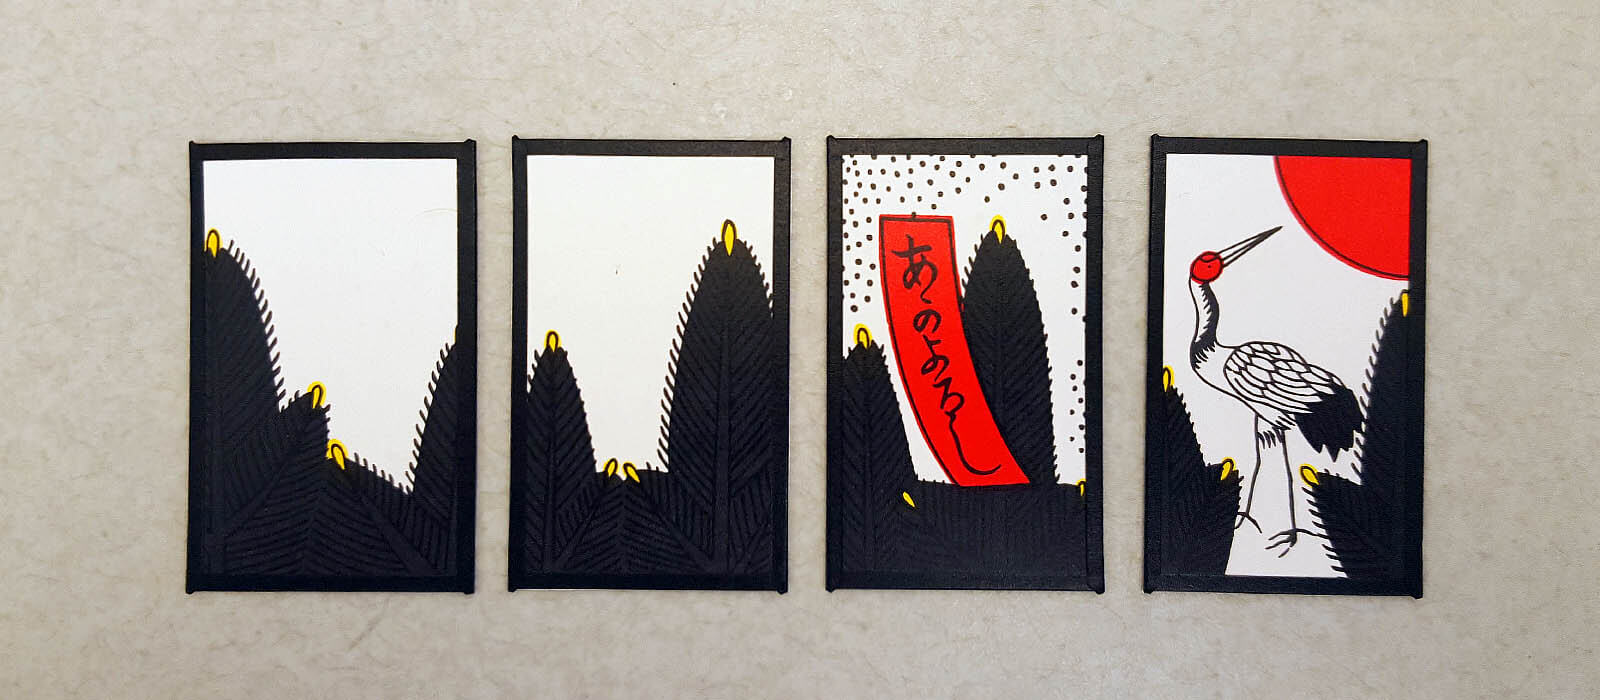 Hanafuda January cards